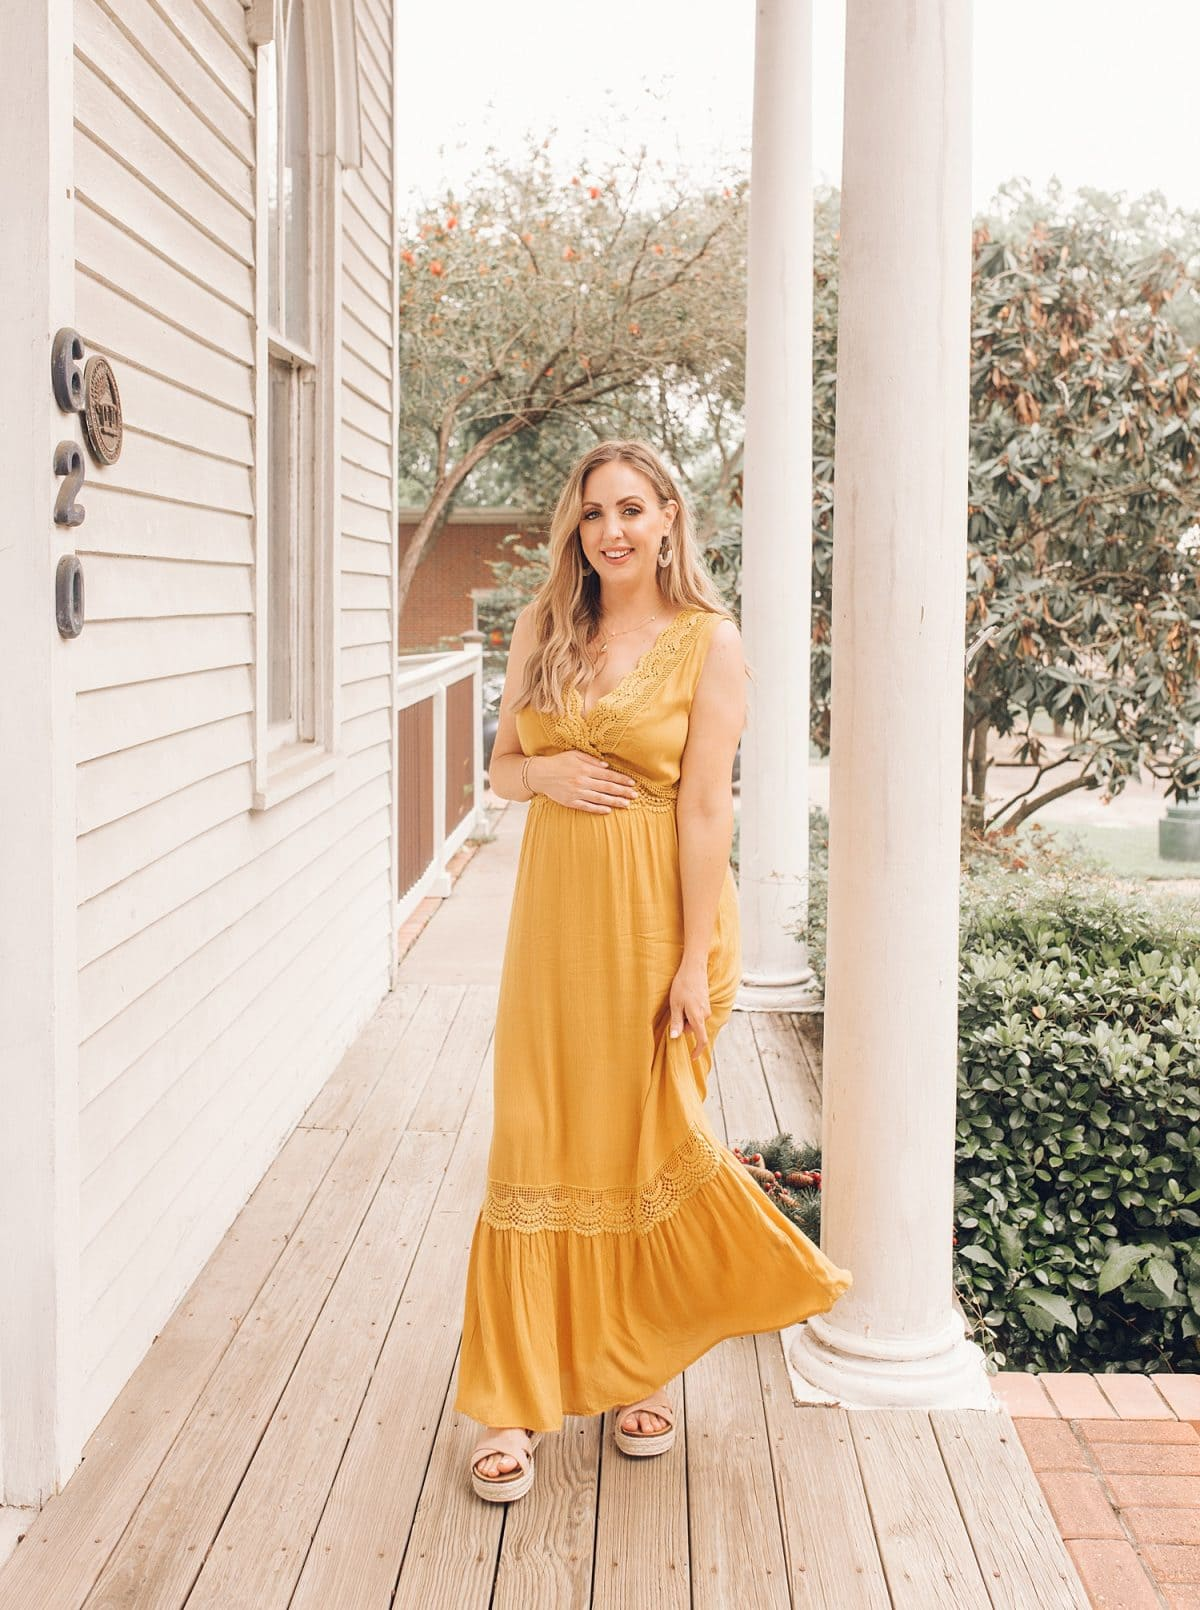 Houston mommy blogger Meg O. on the Go shares pretty dresses to wear this Mother's Day and all spring and summer - maxi dresses are wonderful for expecting mamas